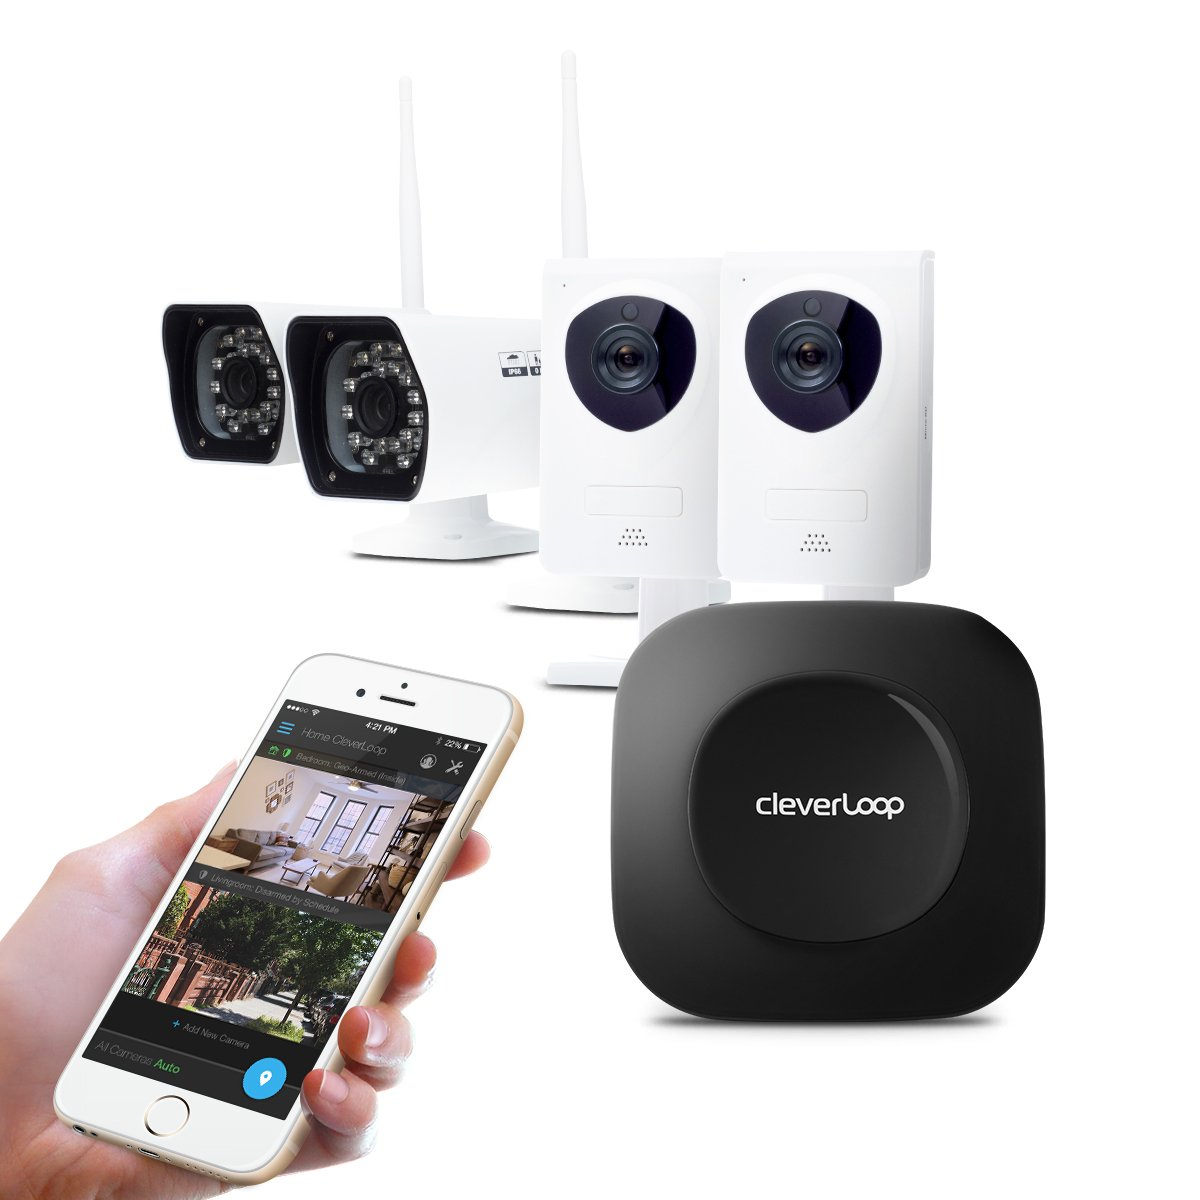 Amazon.com : CleverLoop smart WiFi security camera system with 2 ...